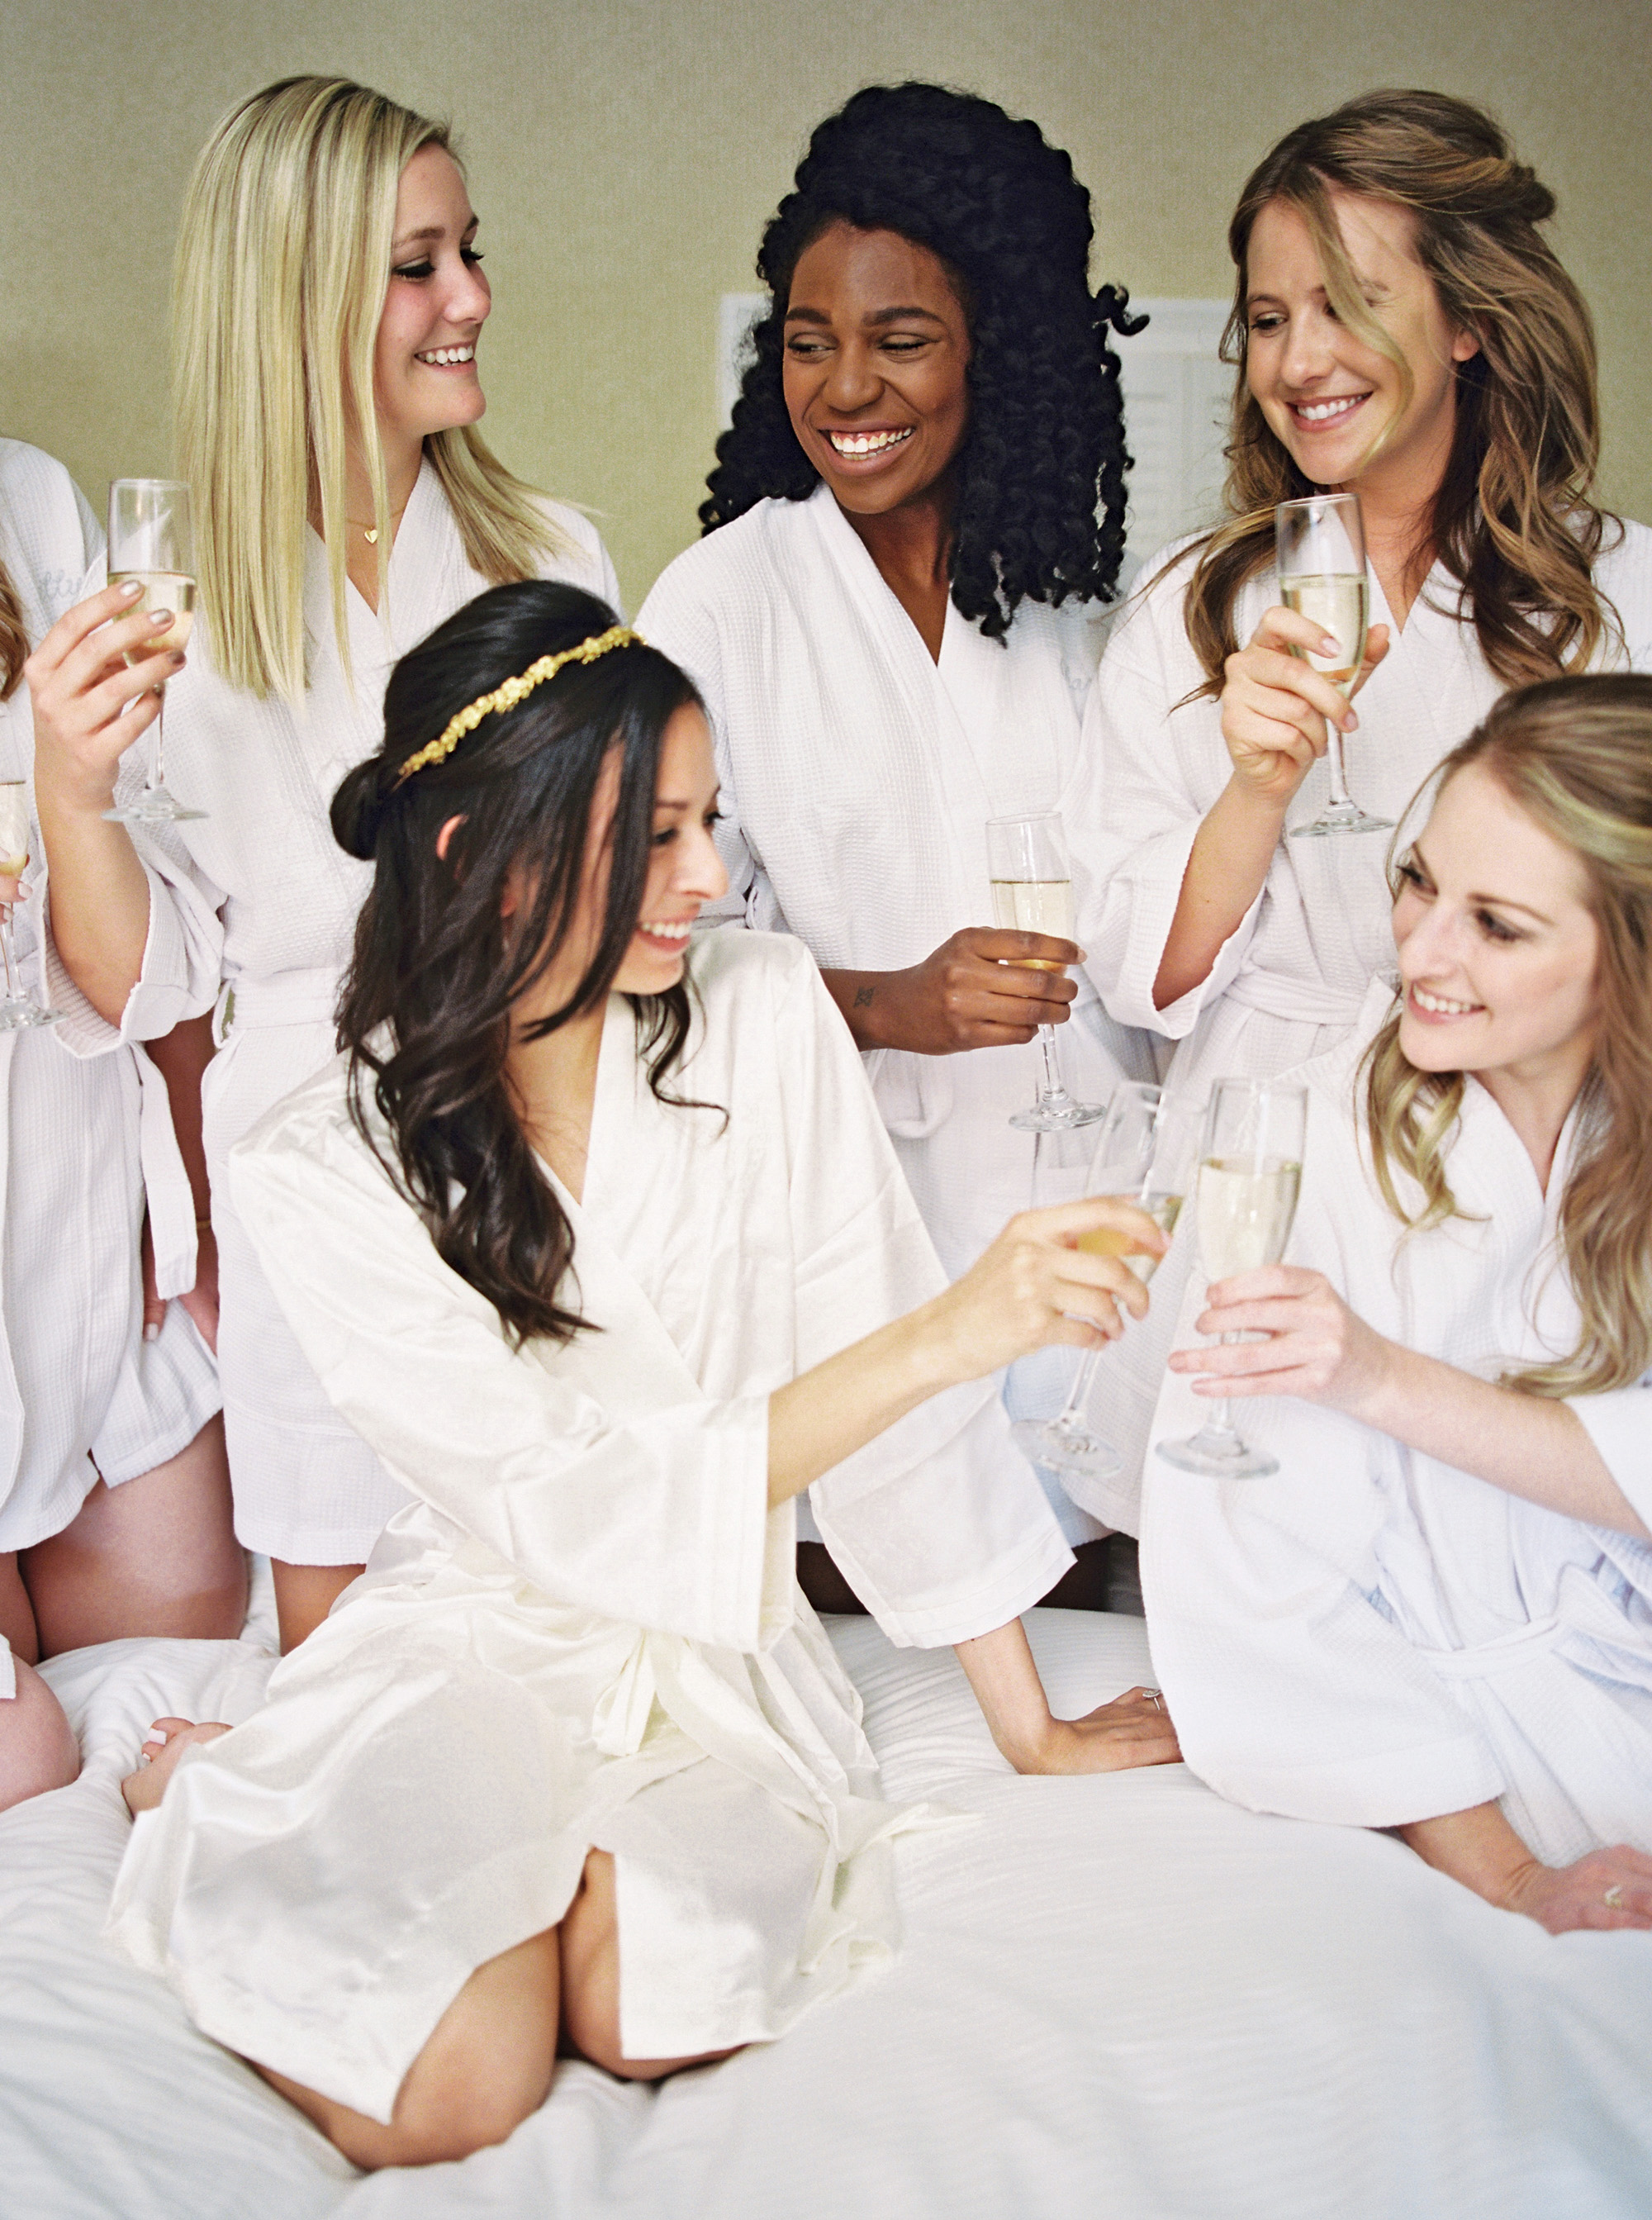 bridesmaids at spa drinking champagne